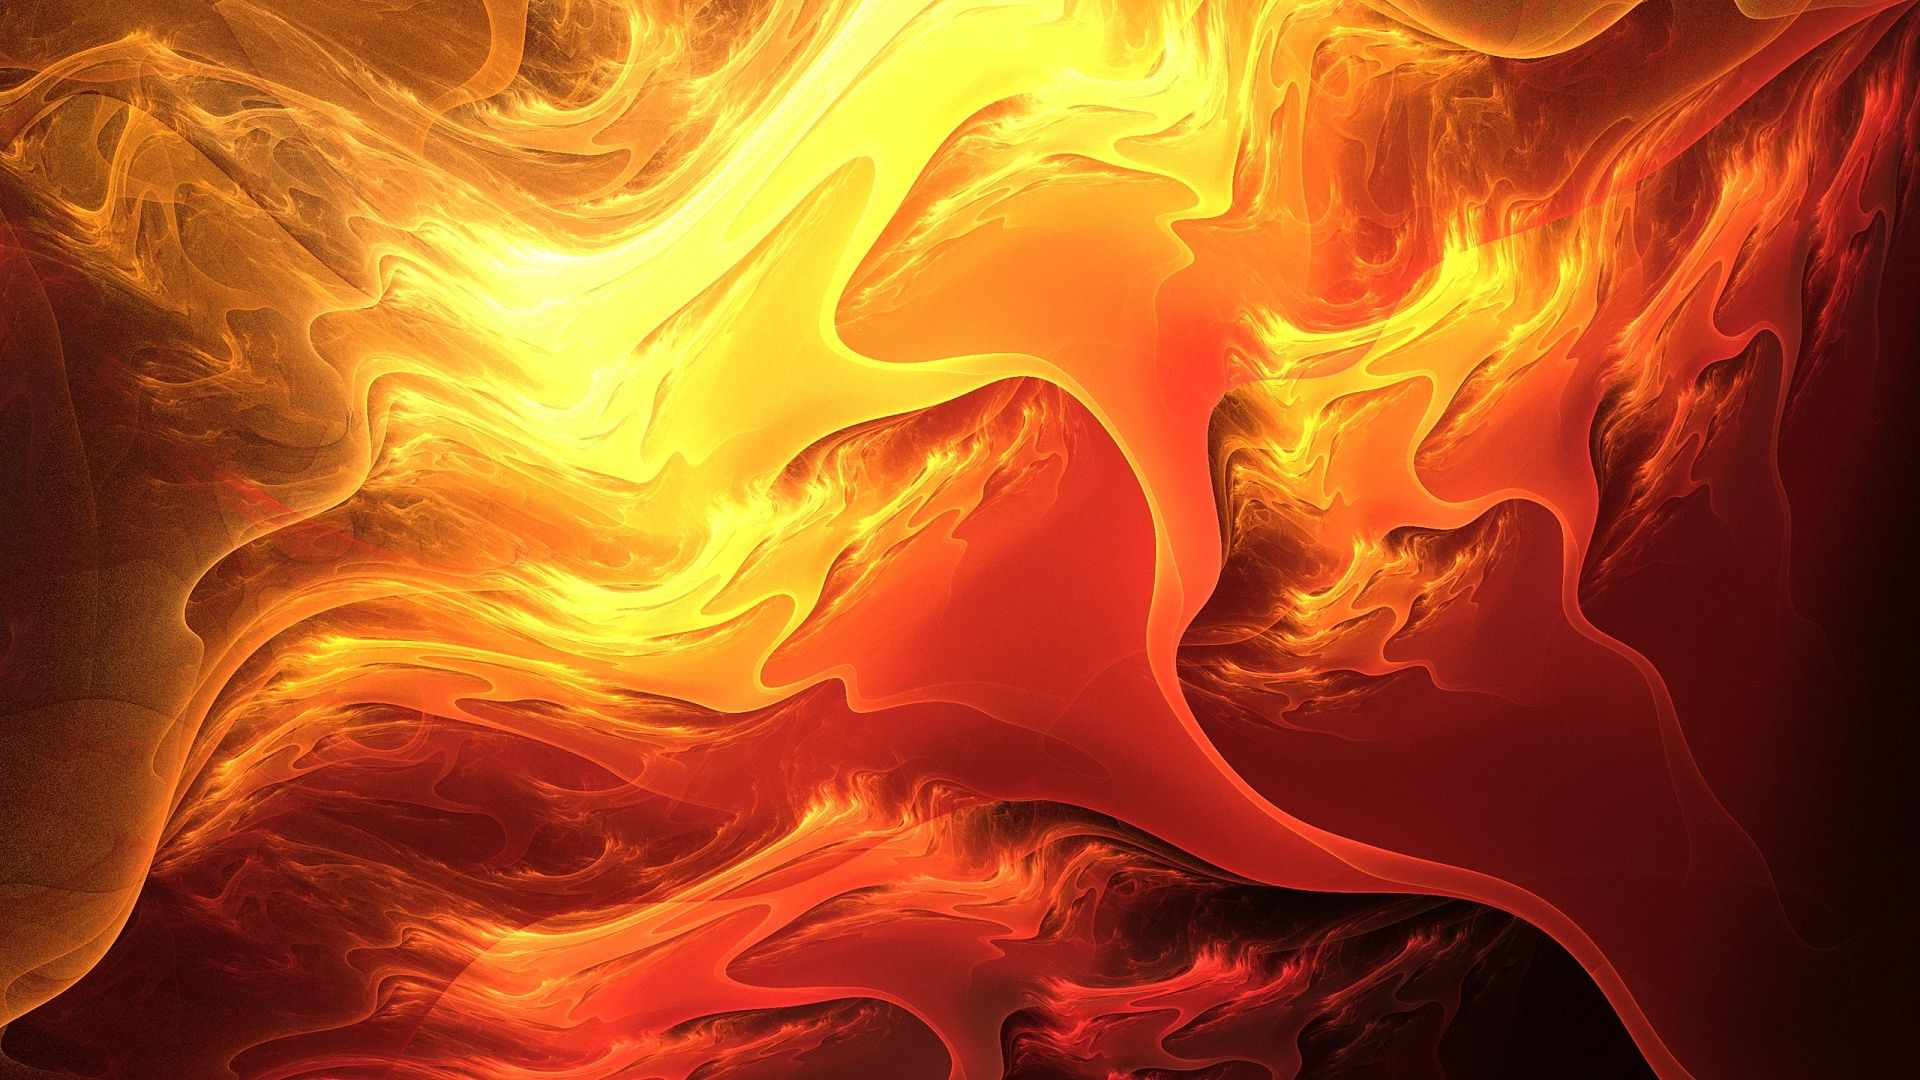 1920x1080 3d Abstract Color Orange Digital Hd Wallpapers 1080p Abstract Fire Art Bright Paintings